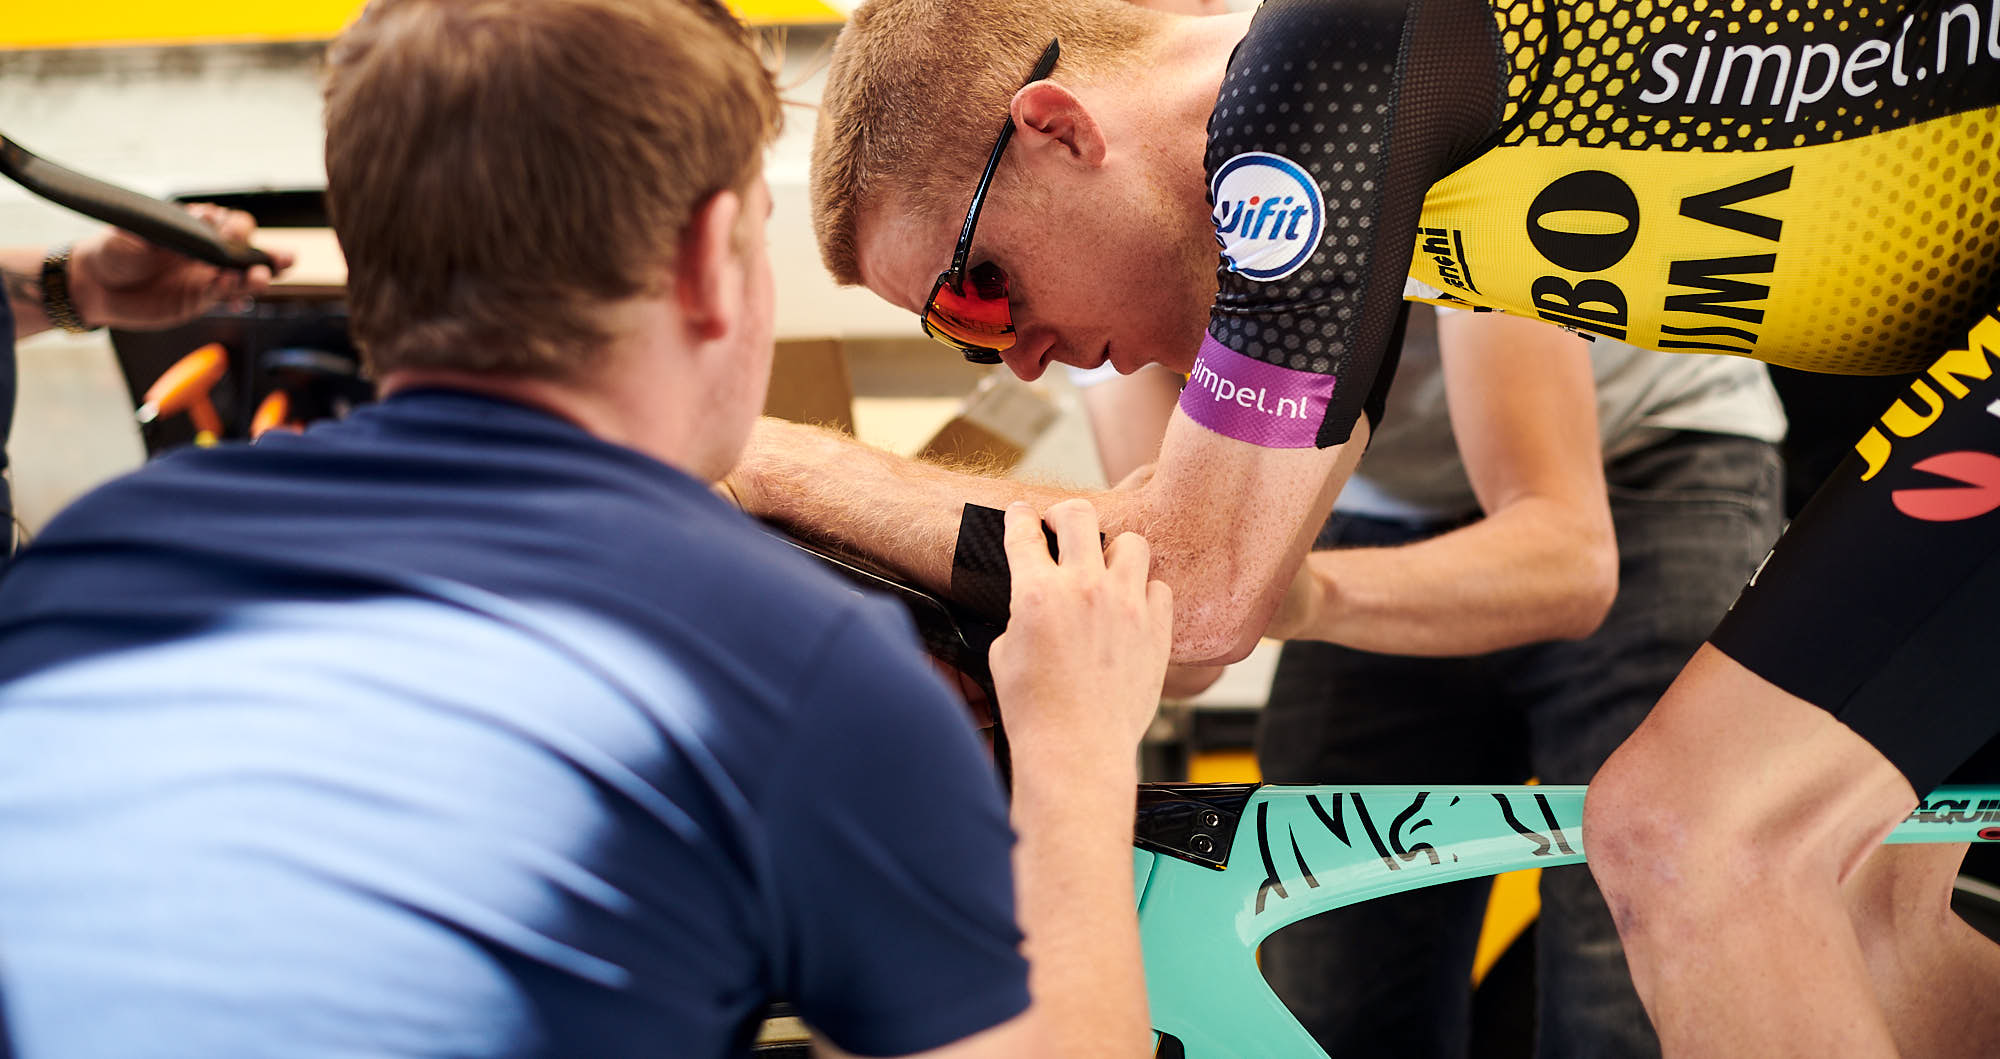 Steven Kruijswijk and a mechanic working on his time trial bike before the Tour de France in Brussels